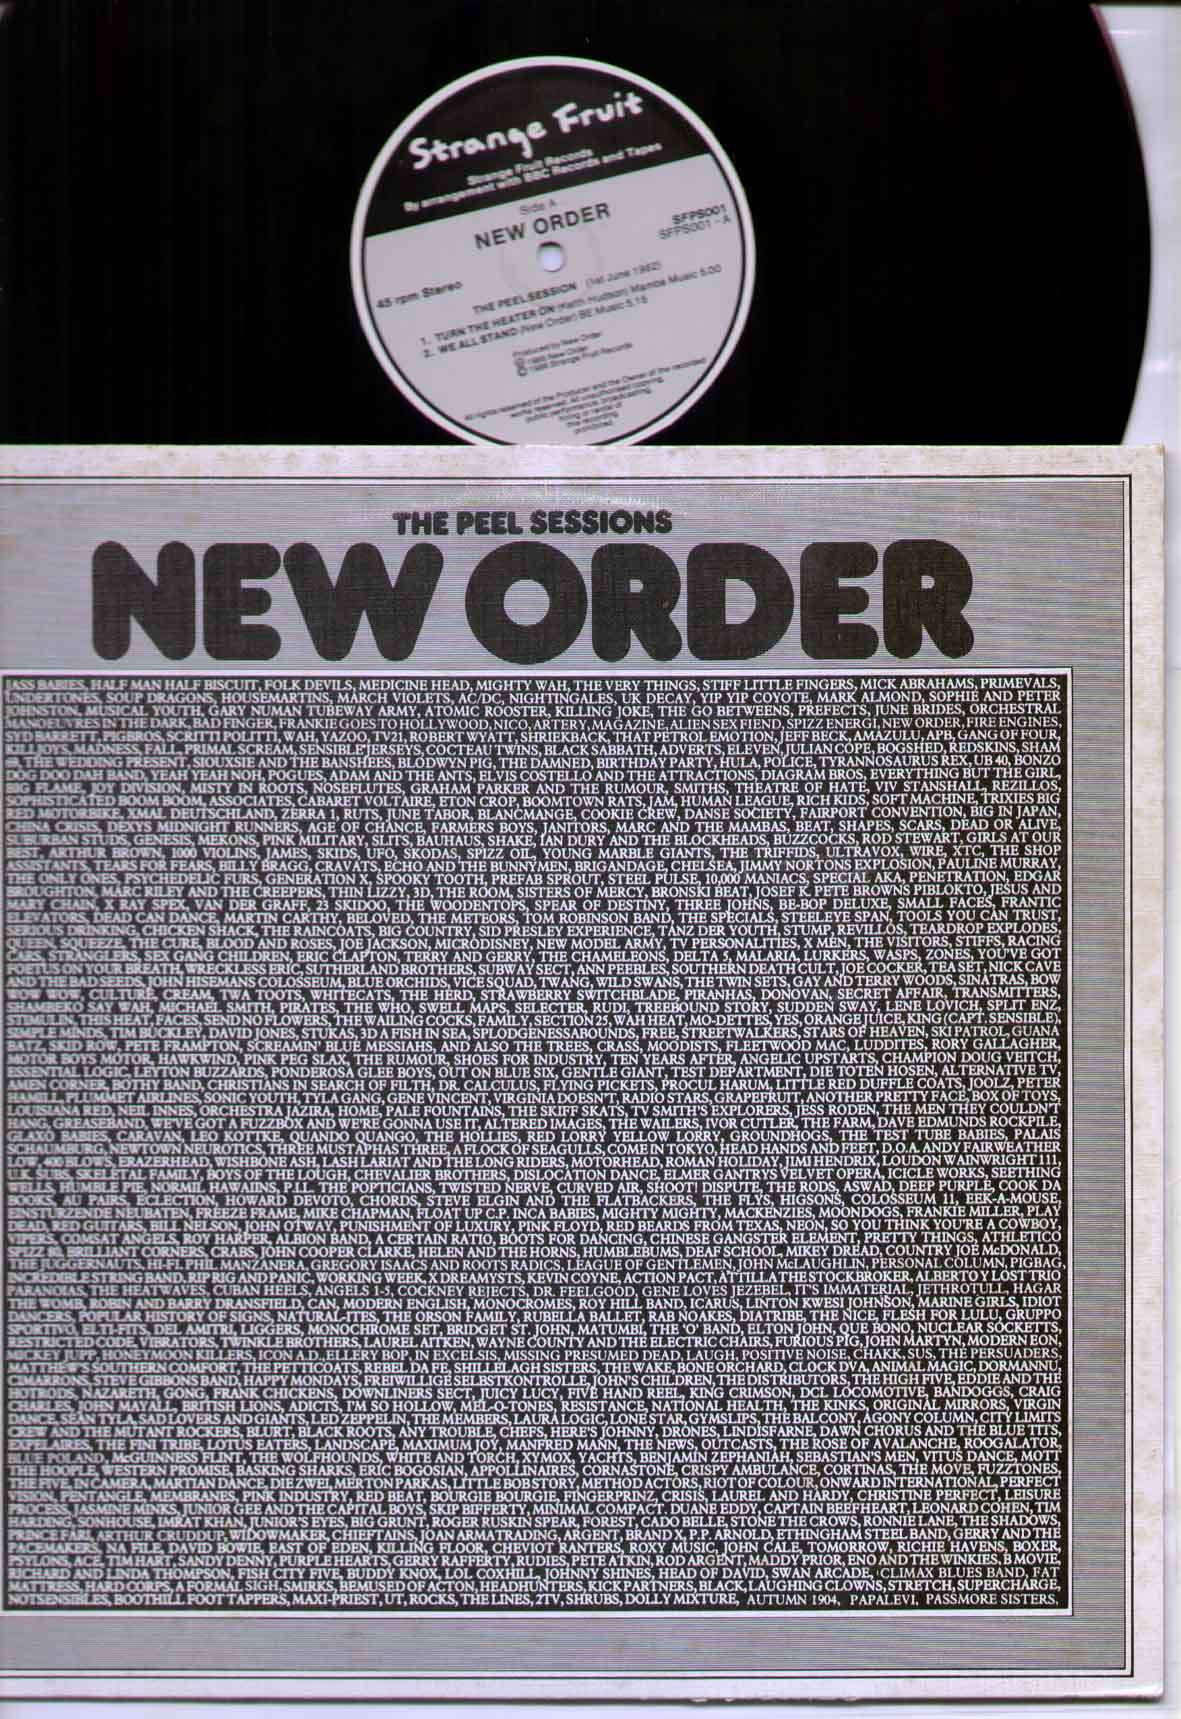 New Order - Peel Sessions LP